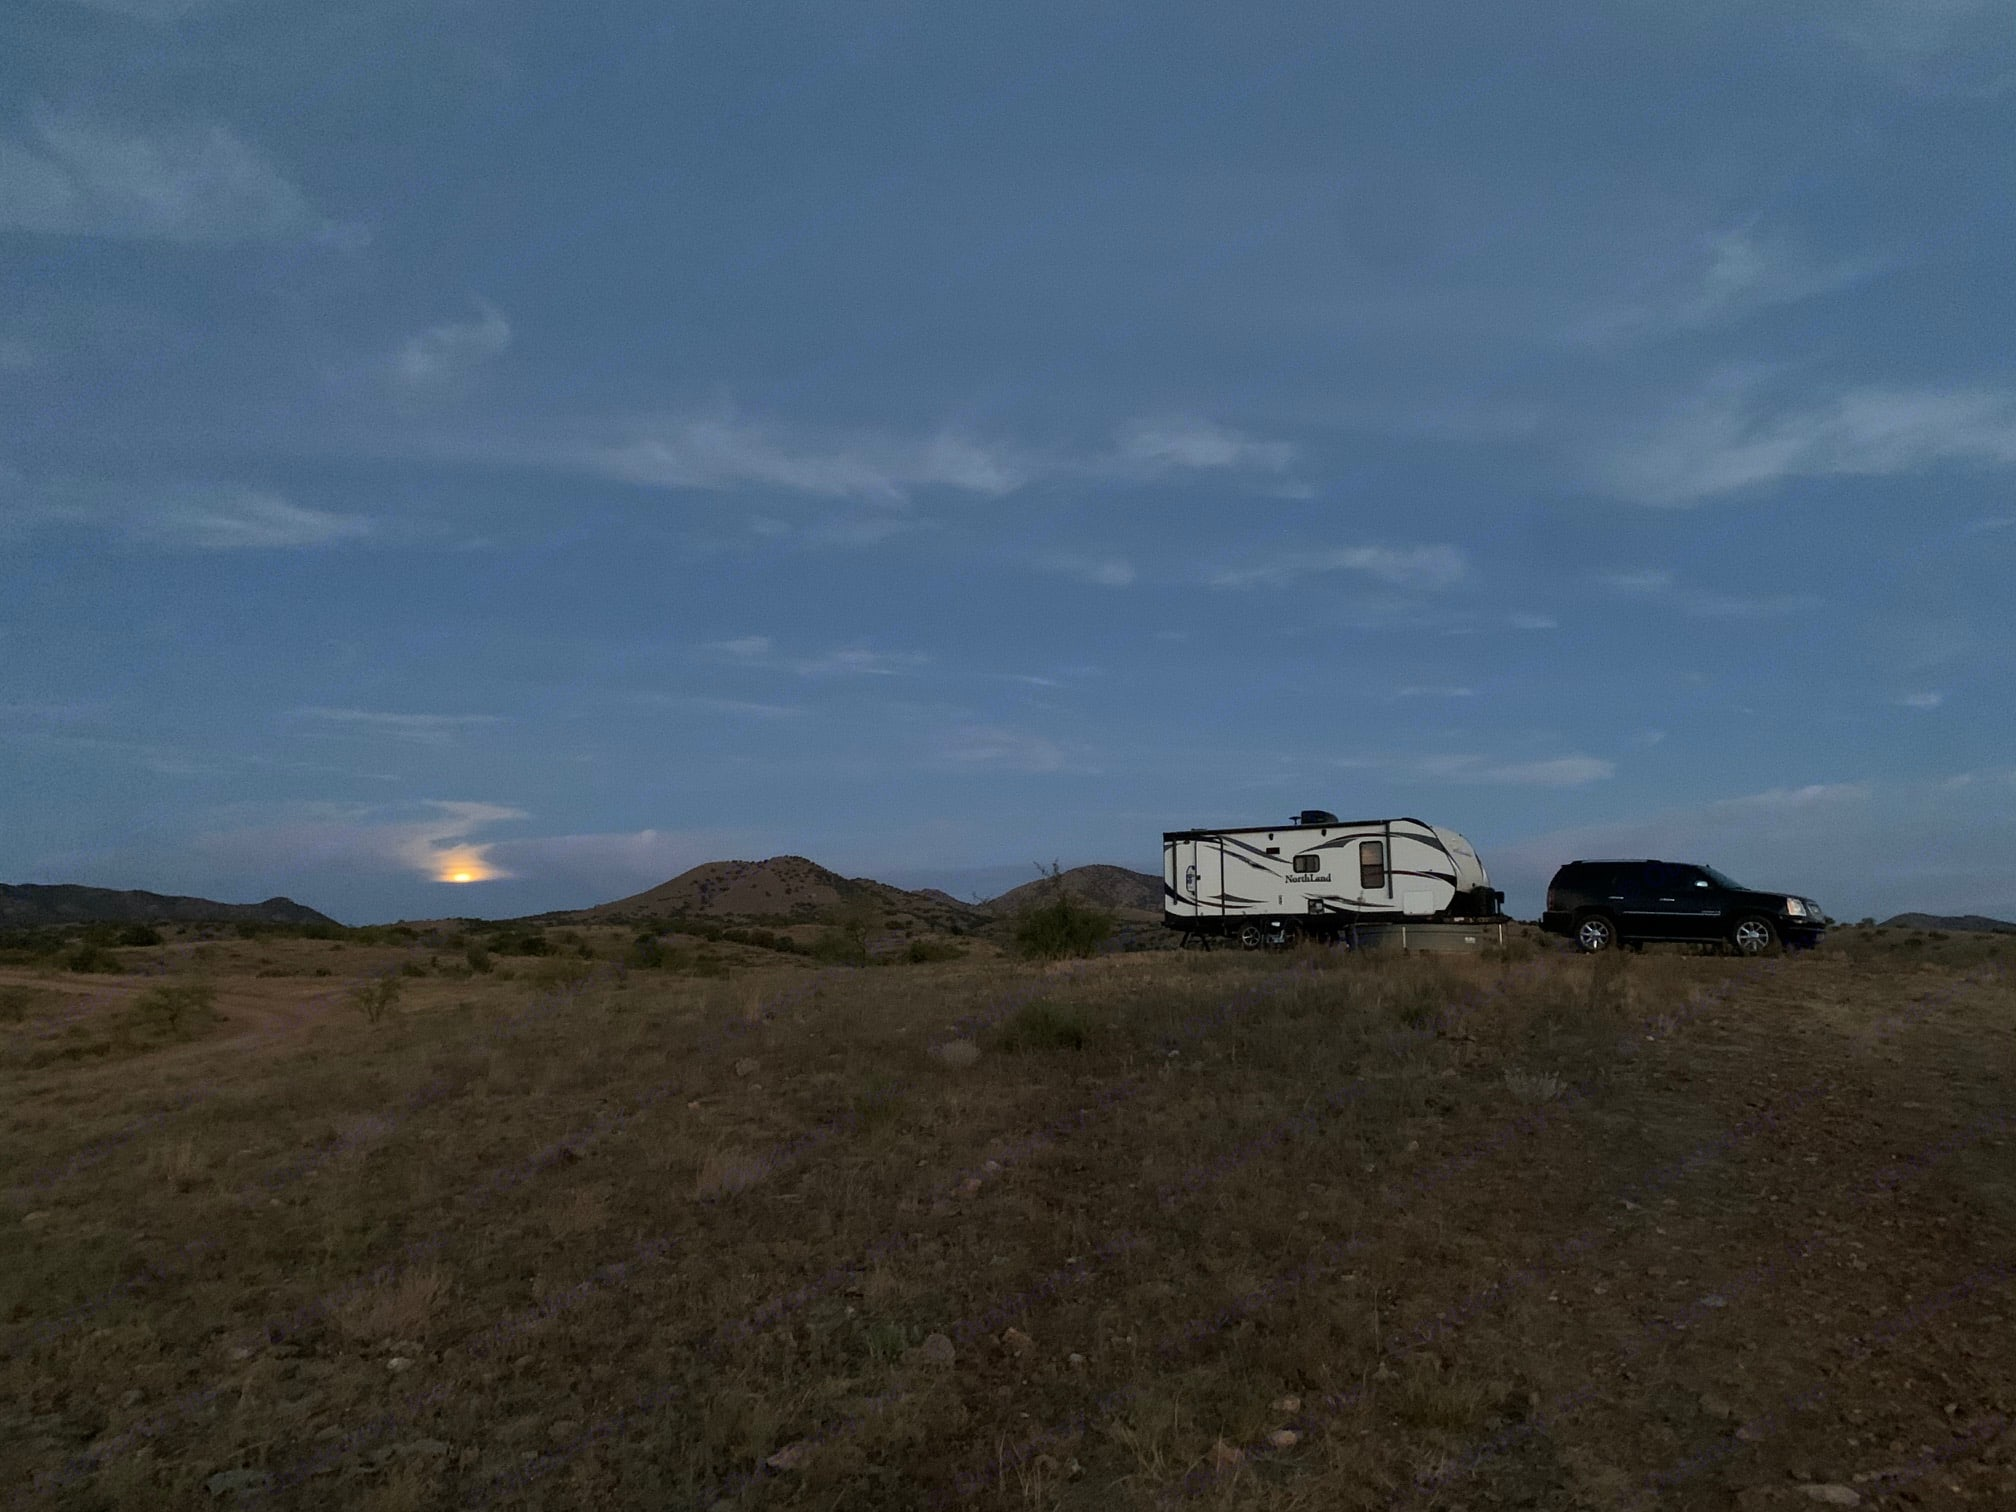 Boondocking next to Kentucky Camp in the Santa Rita's. Pacific Coachworks Other 2016